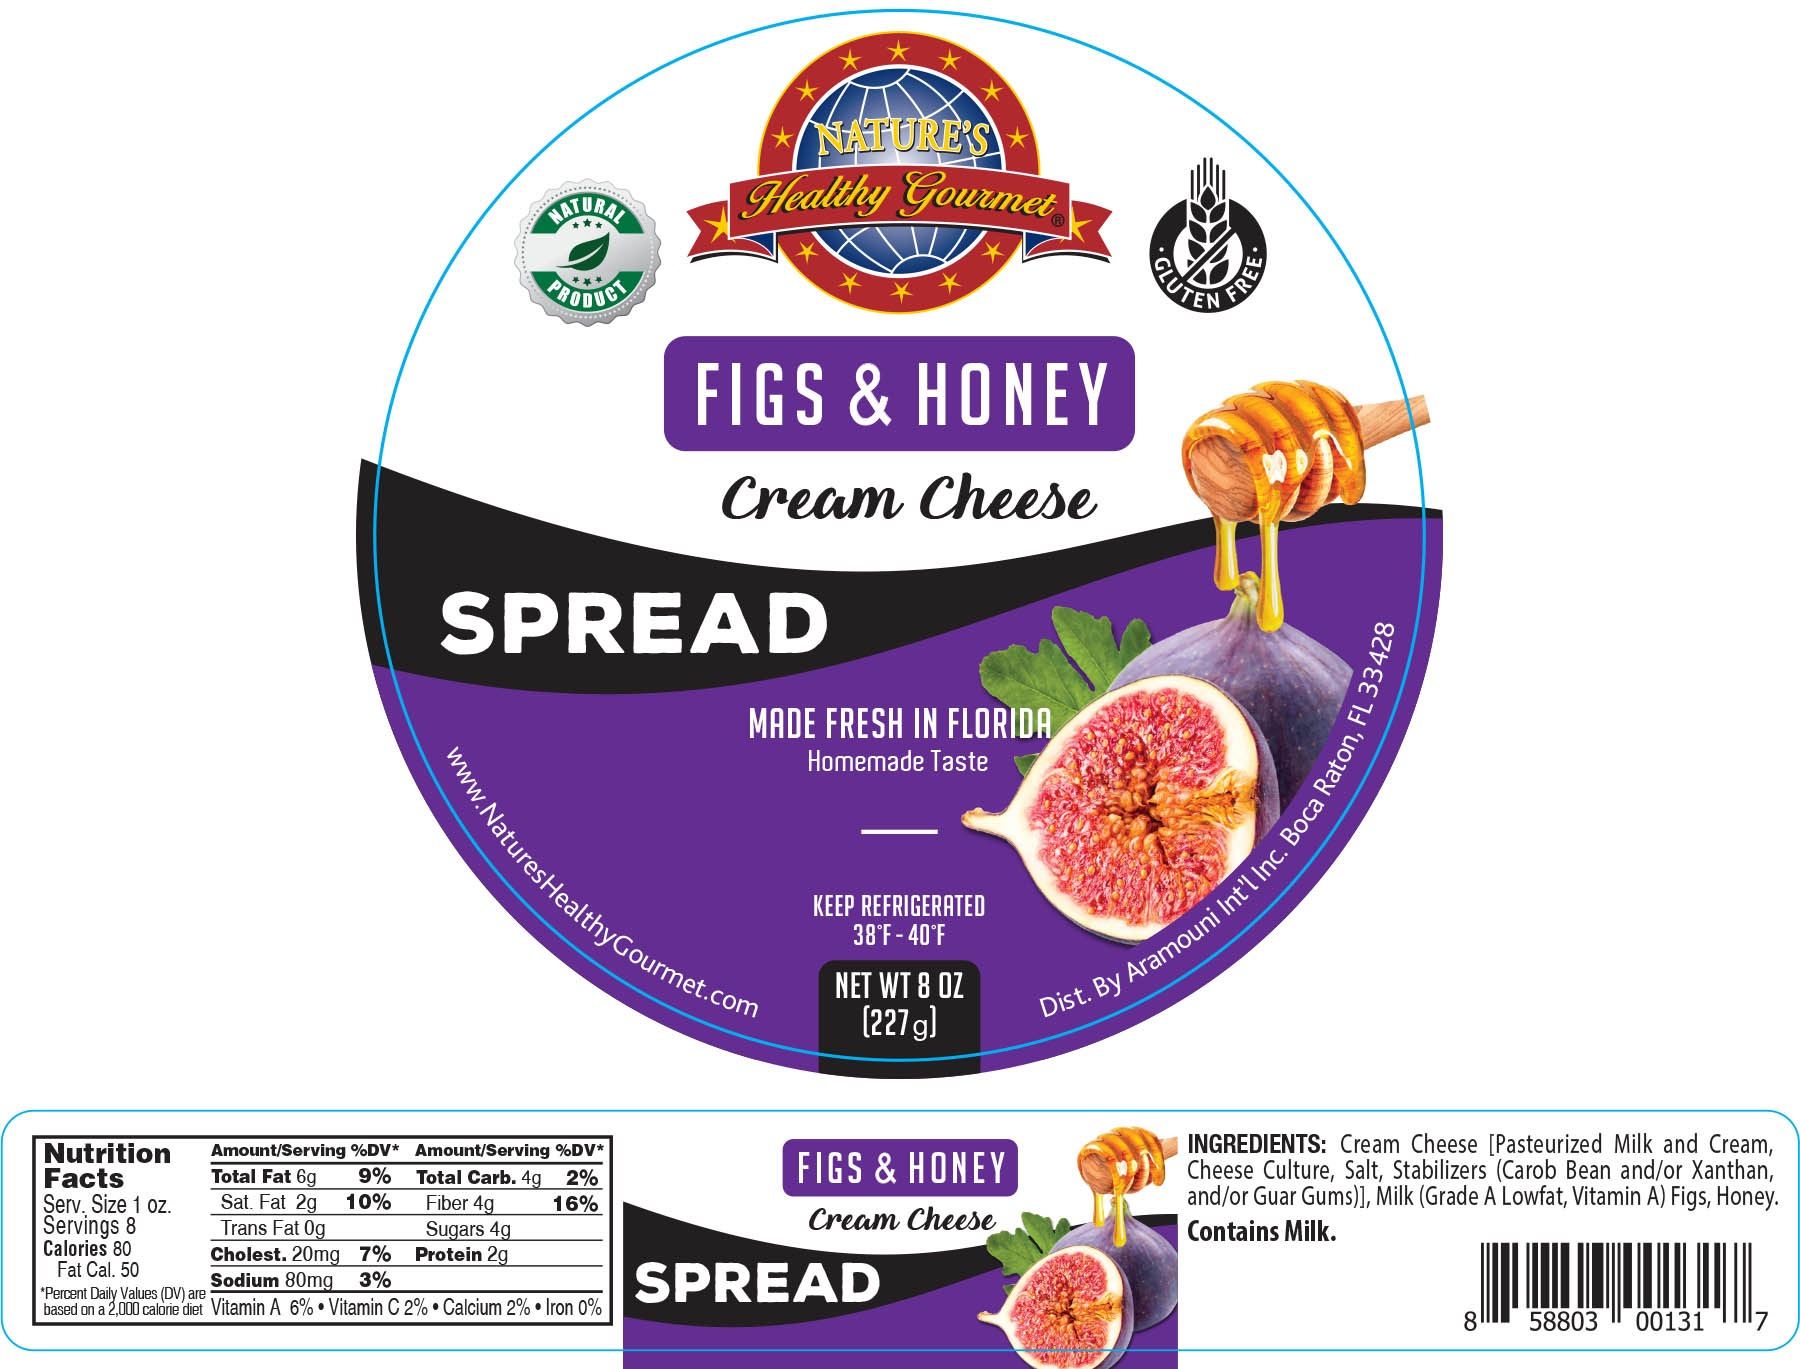 Nature's Figs and Honey Spread